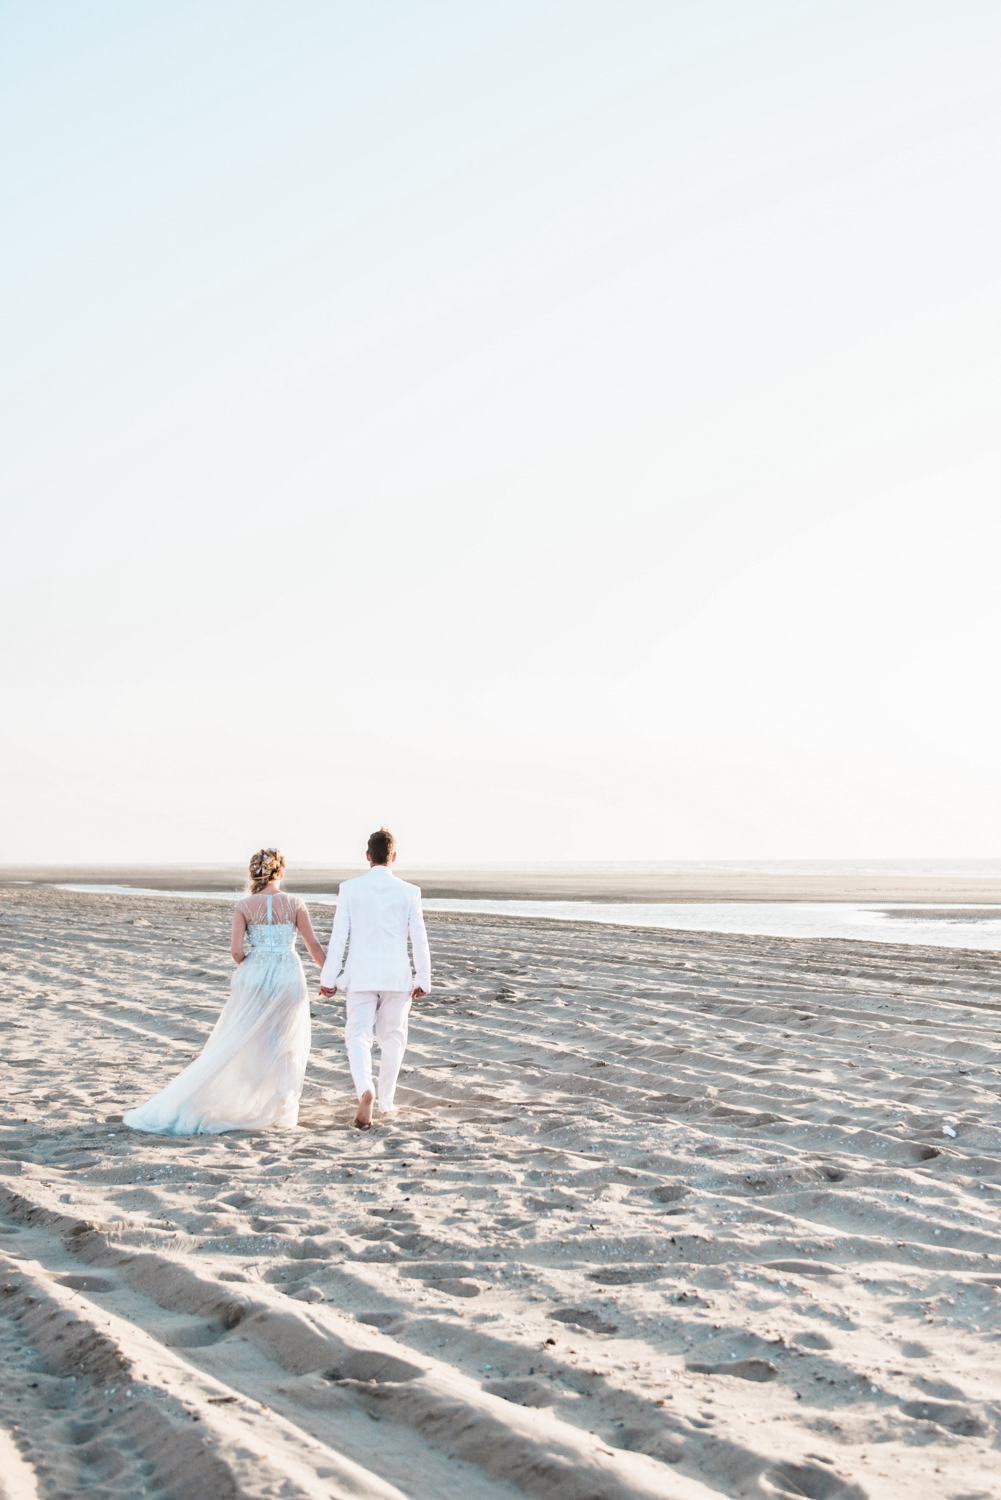 Wedding photography on the beach of the hague in the netherlands